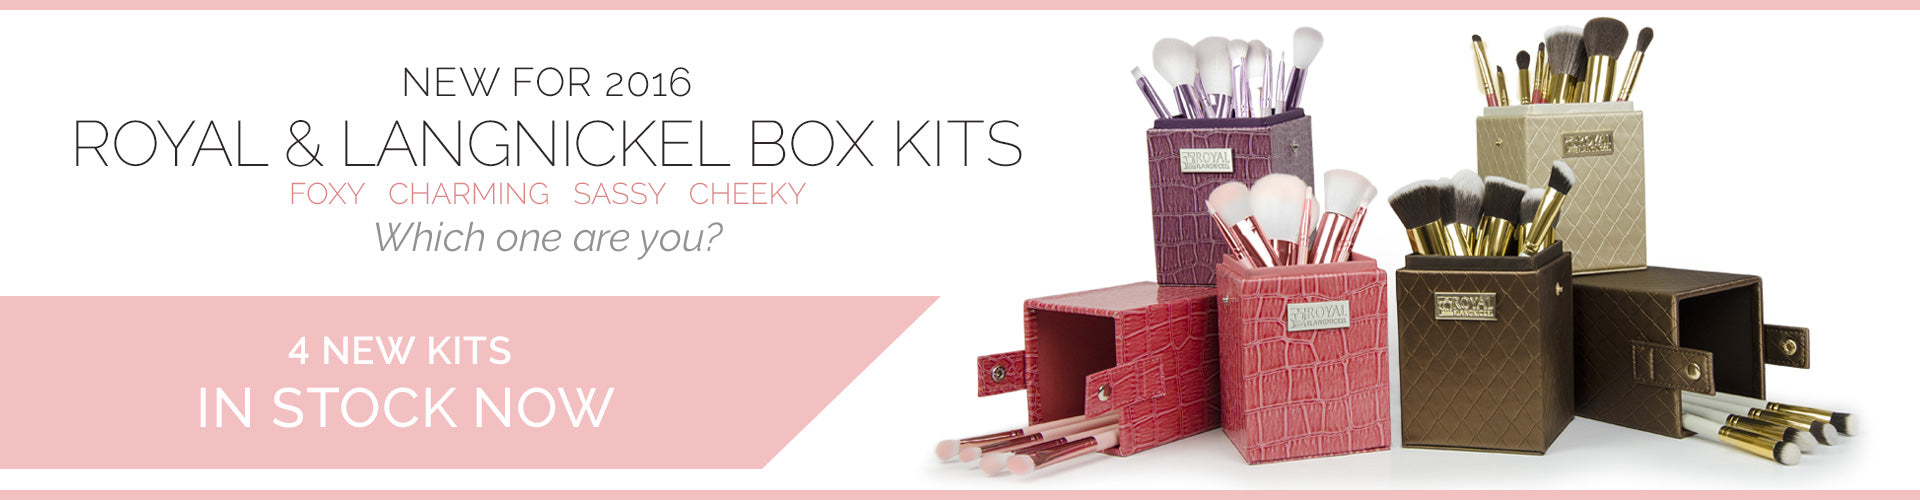 New Box Kits - Now In Stock